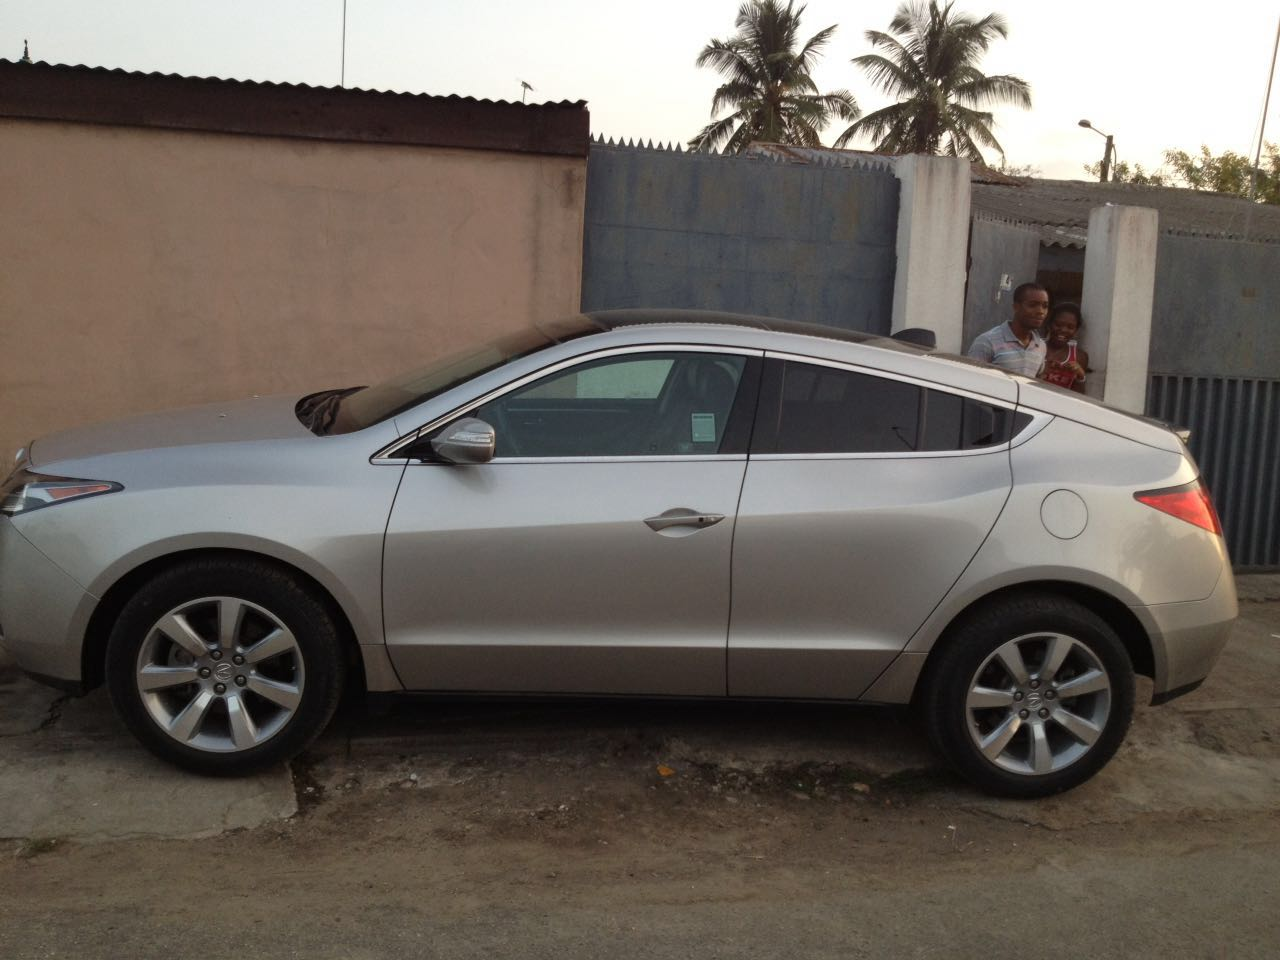 like auto spin acura new on coupe jeffcars com a zdx your crossovers industry for sale connection